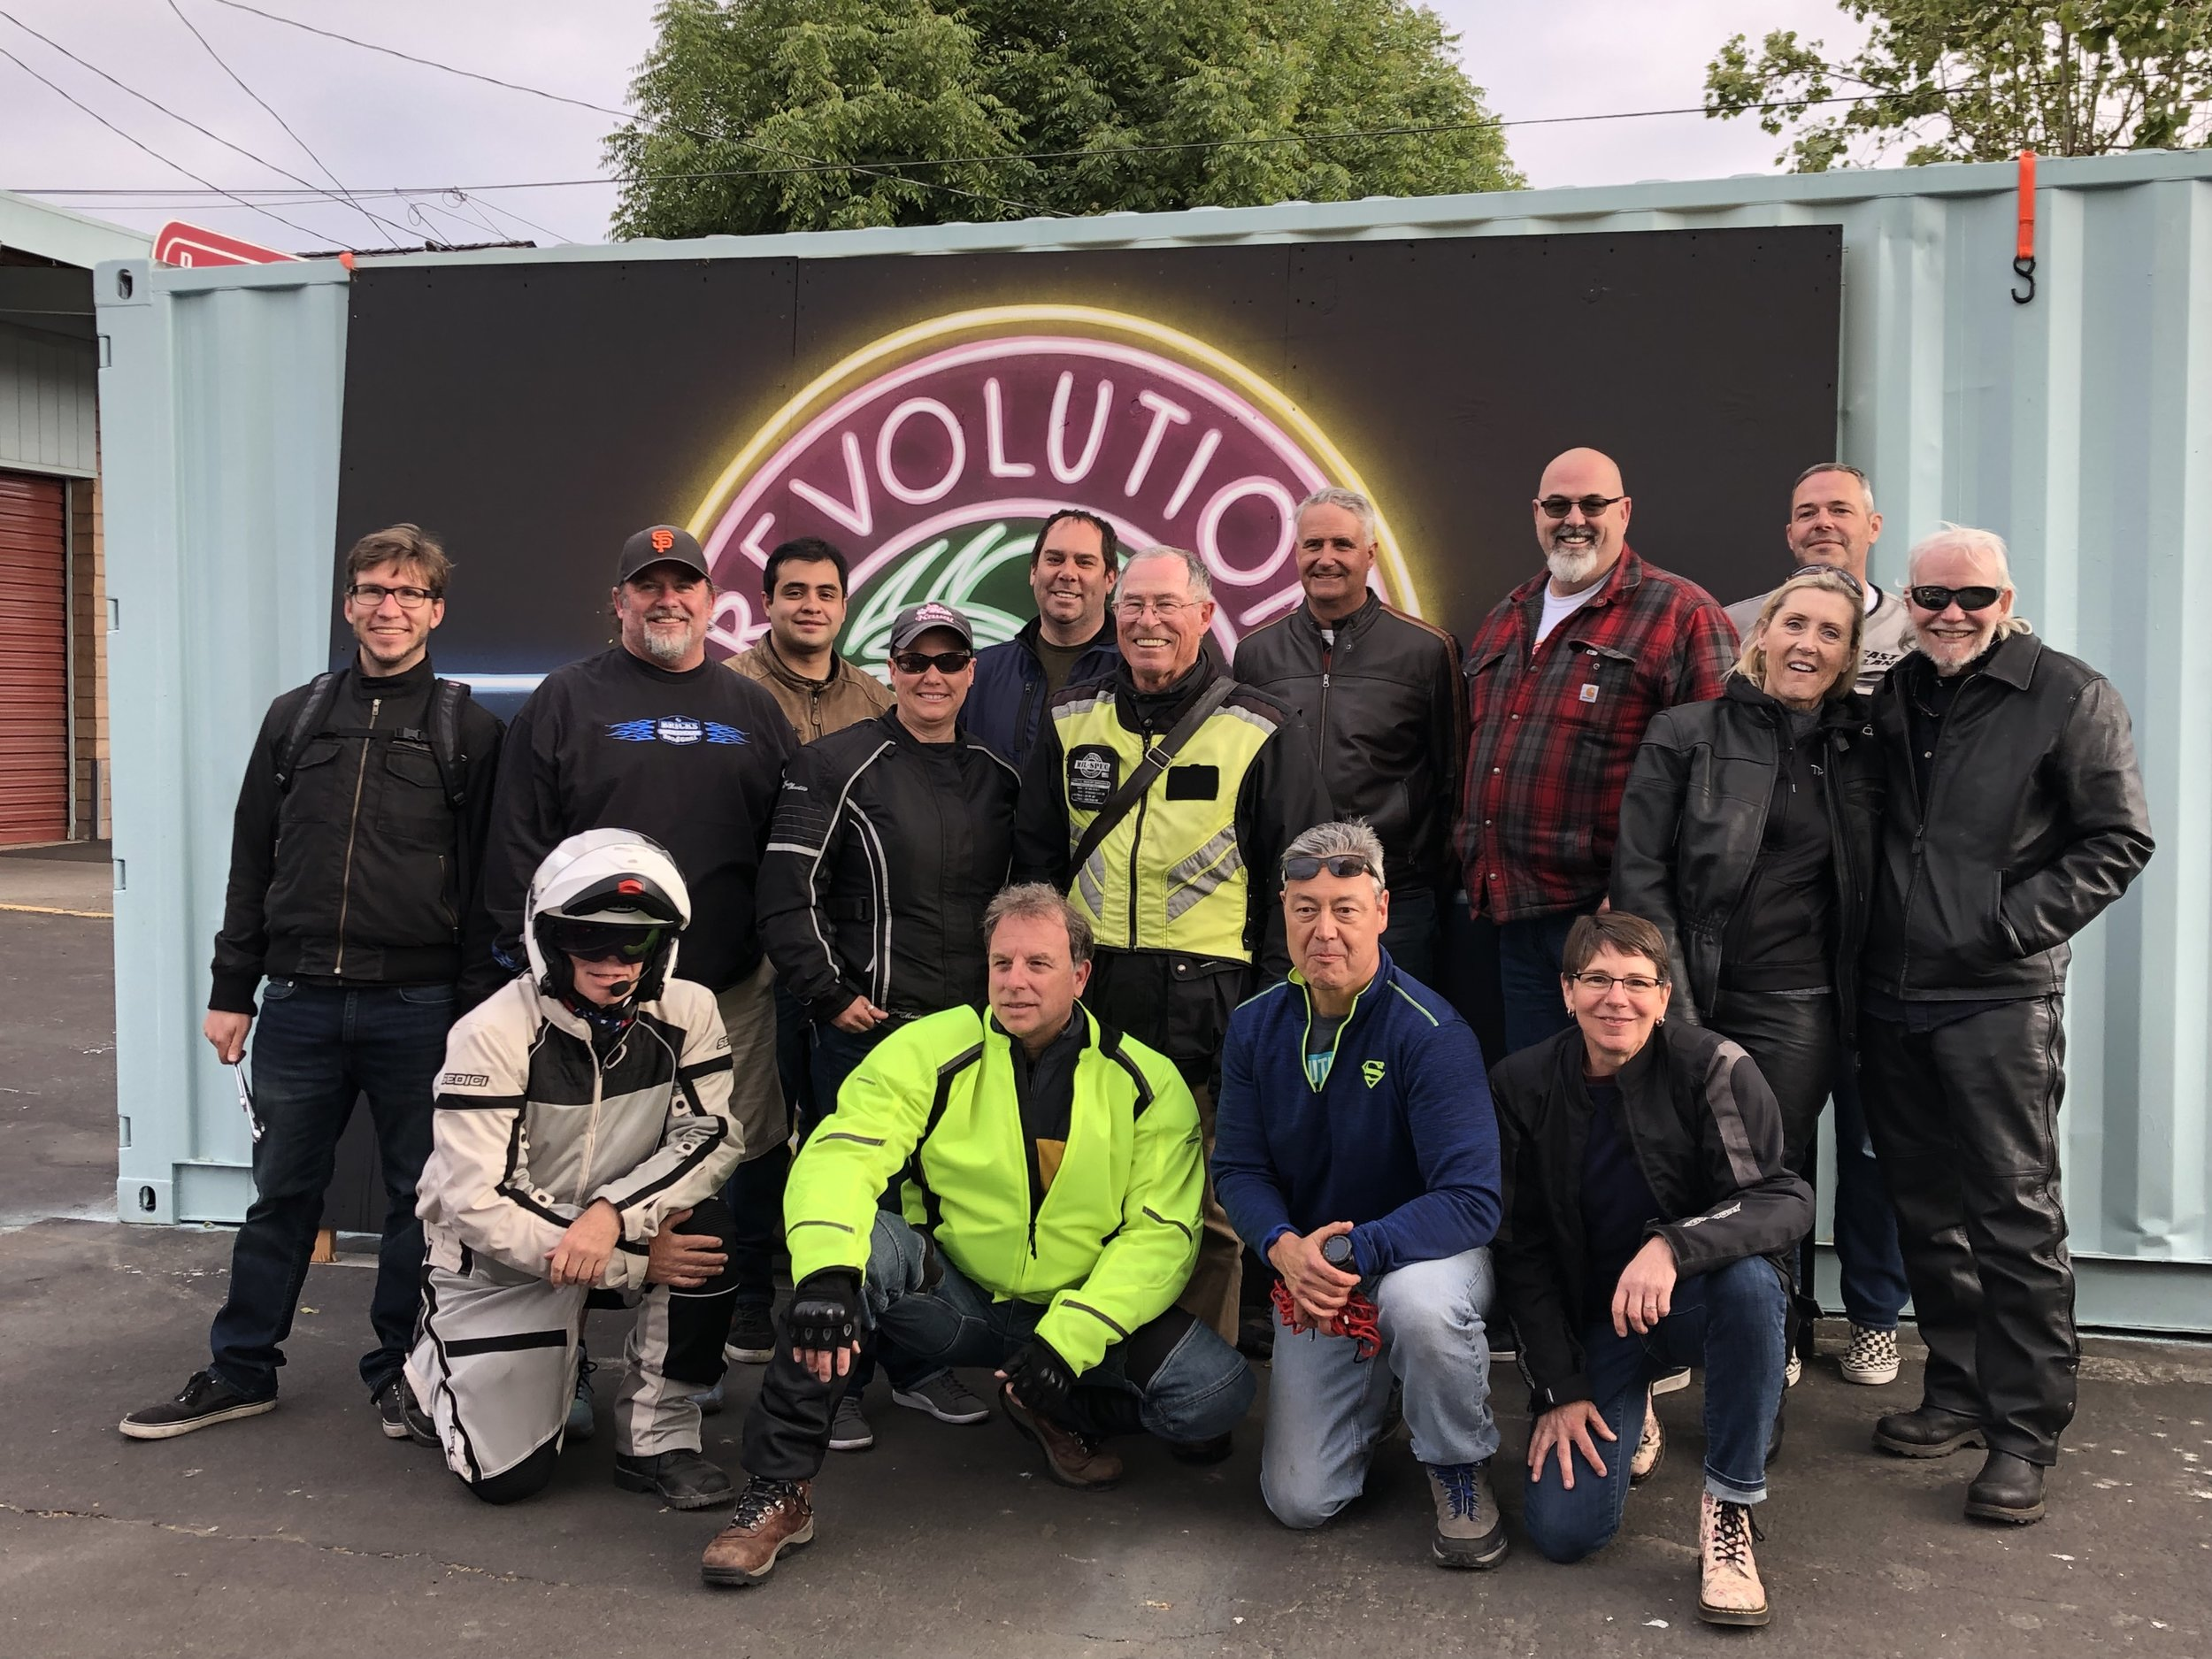 FIRST SUNDAY OF THE MONTH GROUP RIDES -